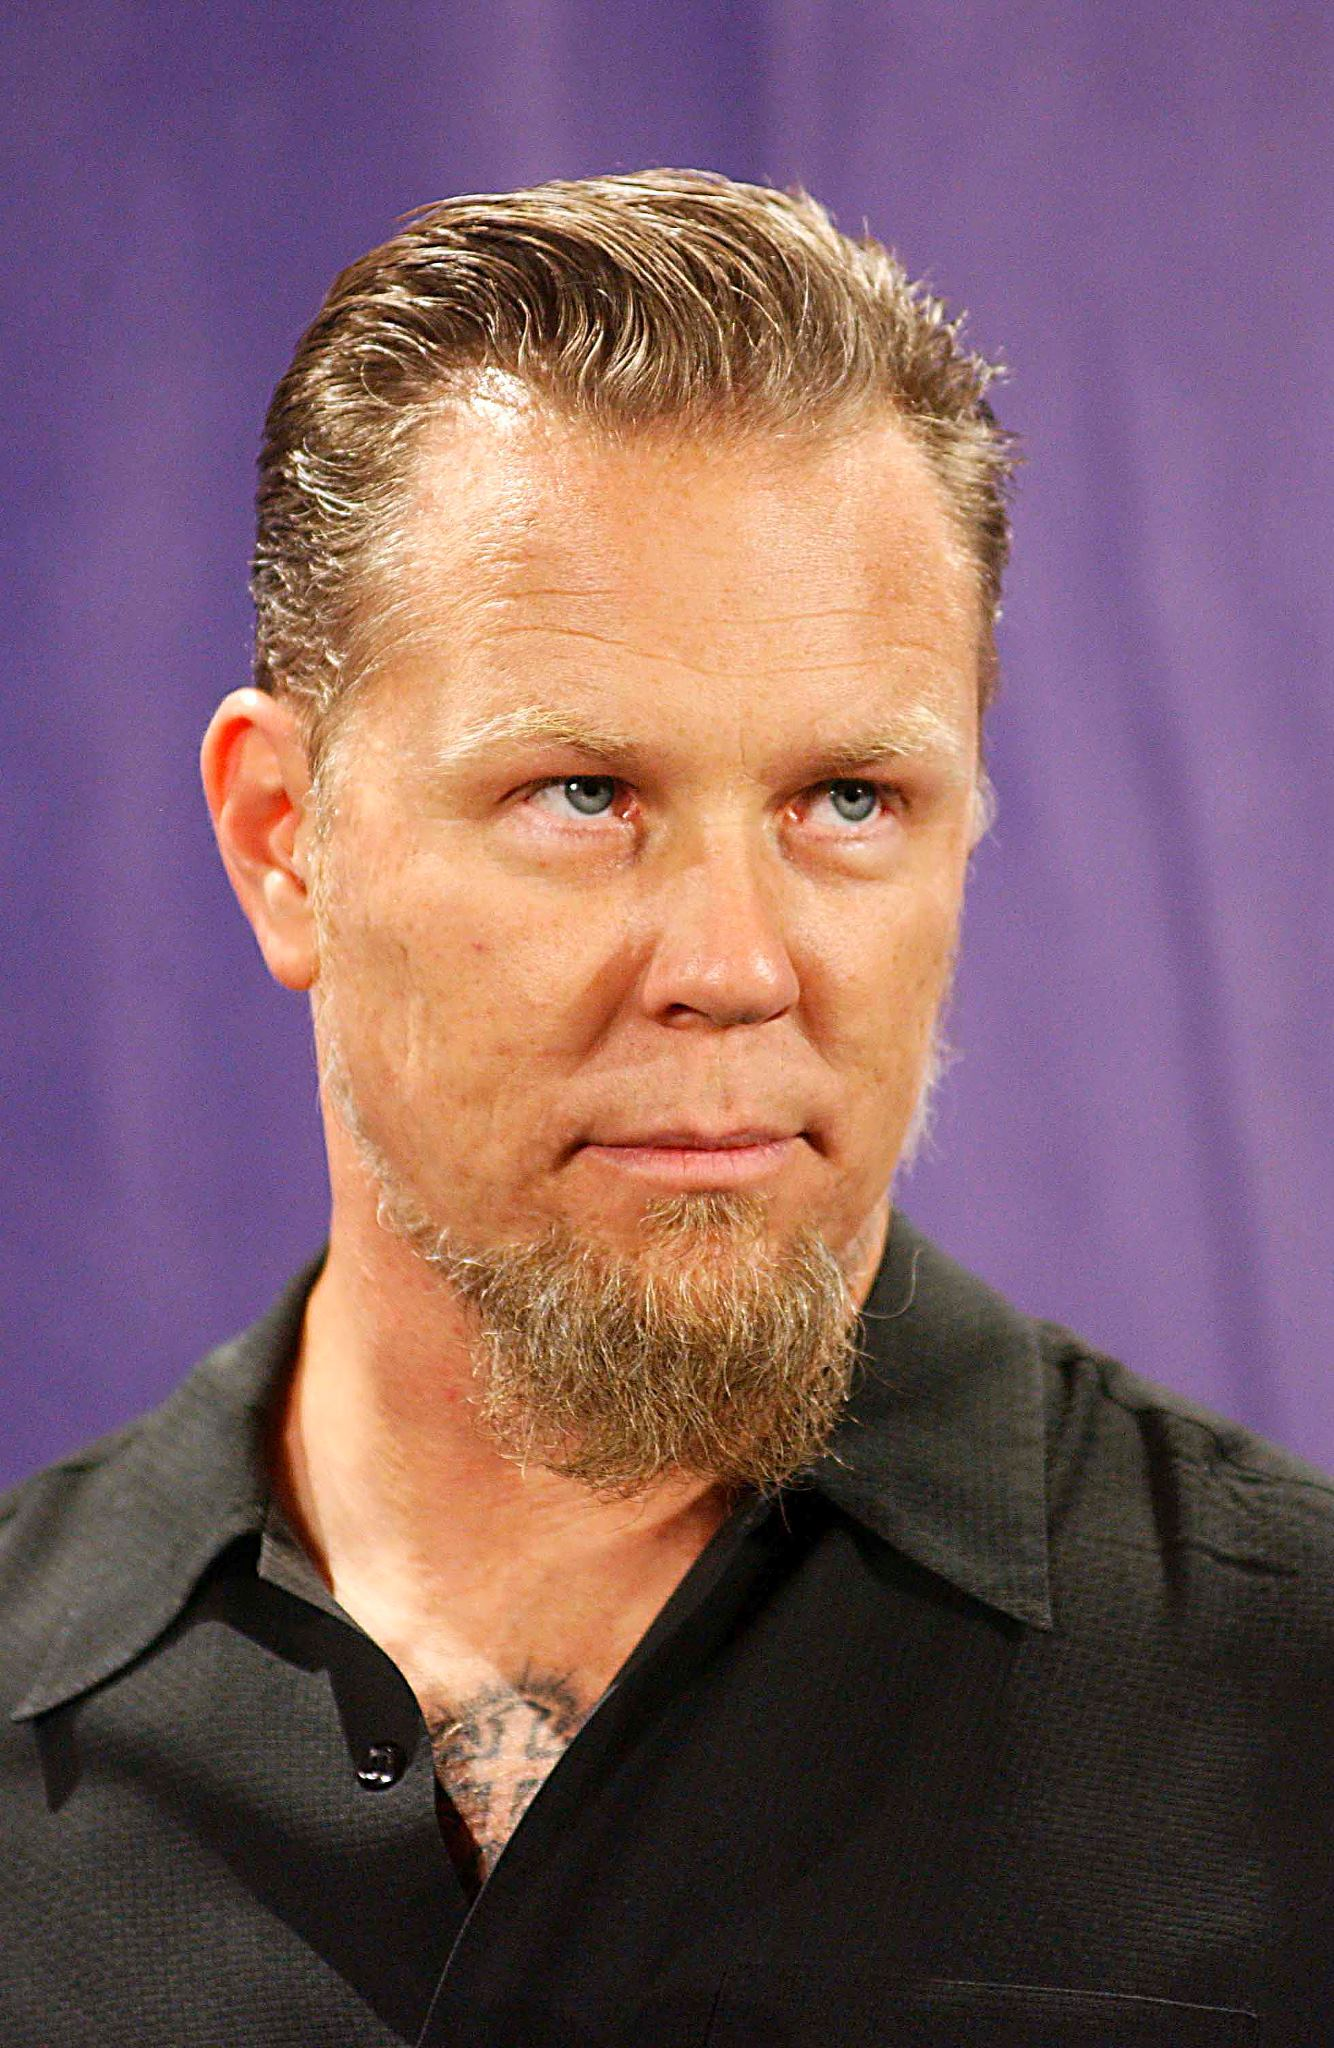 james hetfield biography james hetfield 39 s famous quotes sualci quotes 2019. Black Bedroom Furniture Sets. Home Design Ideas